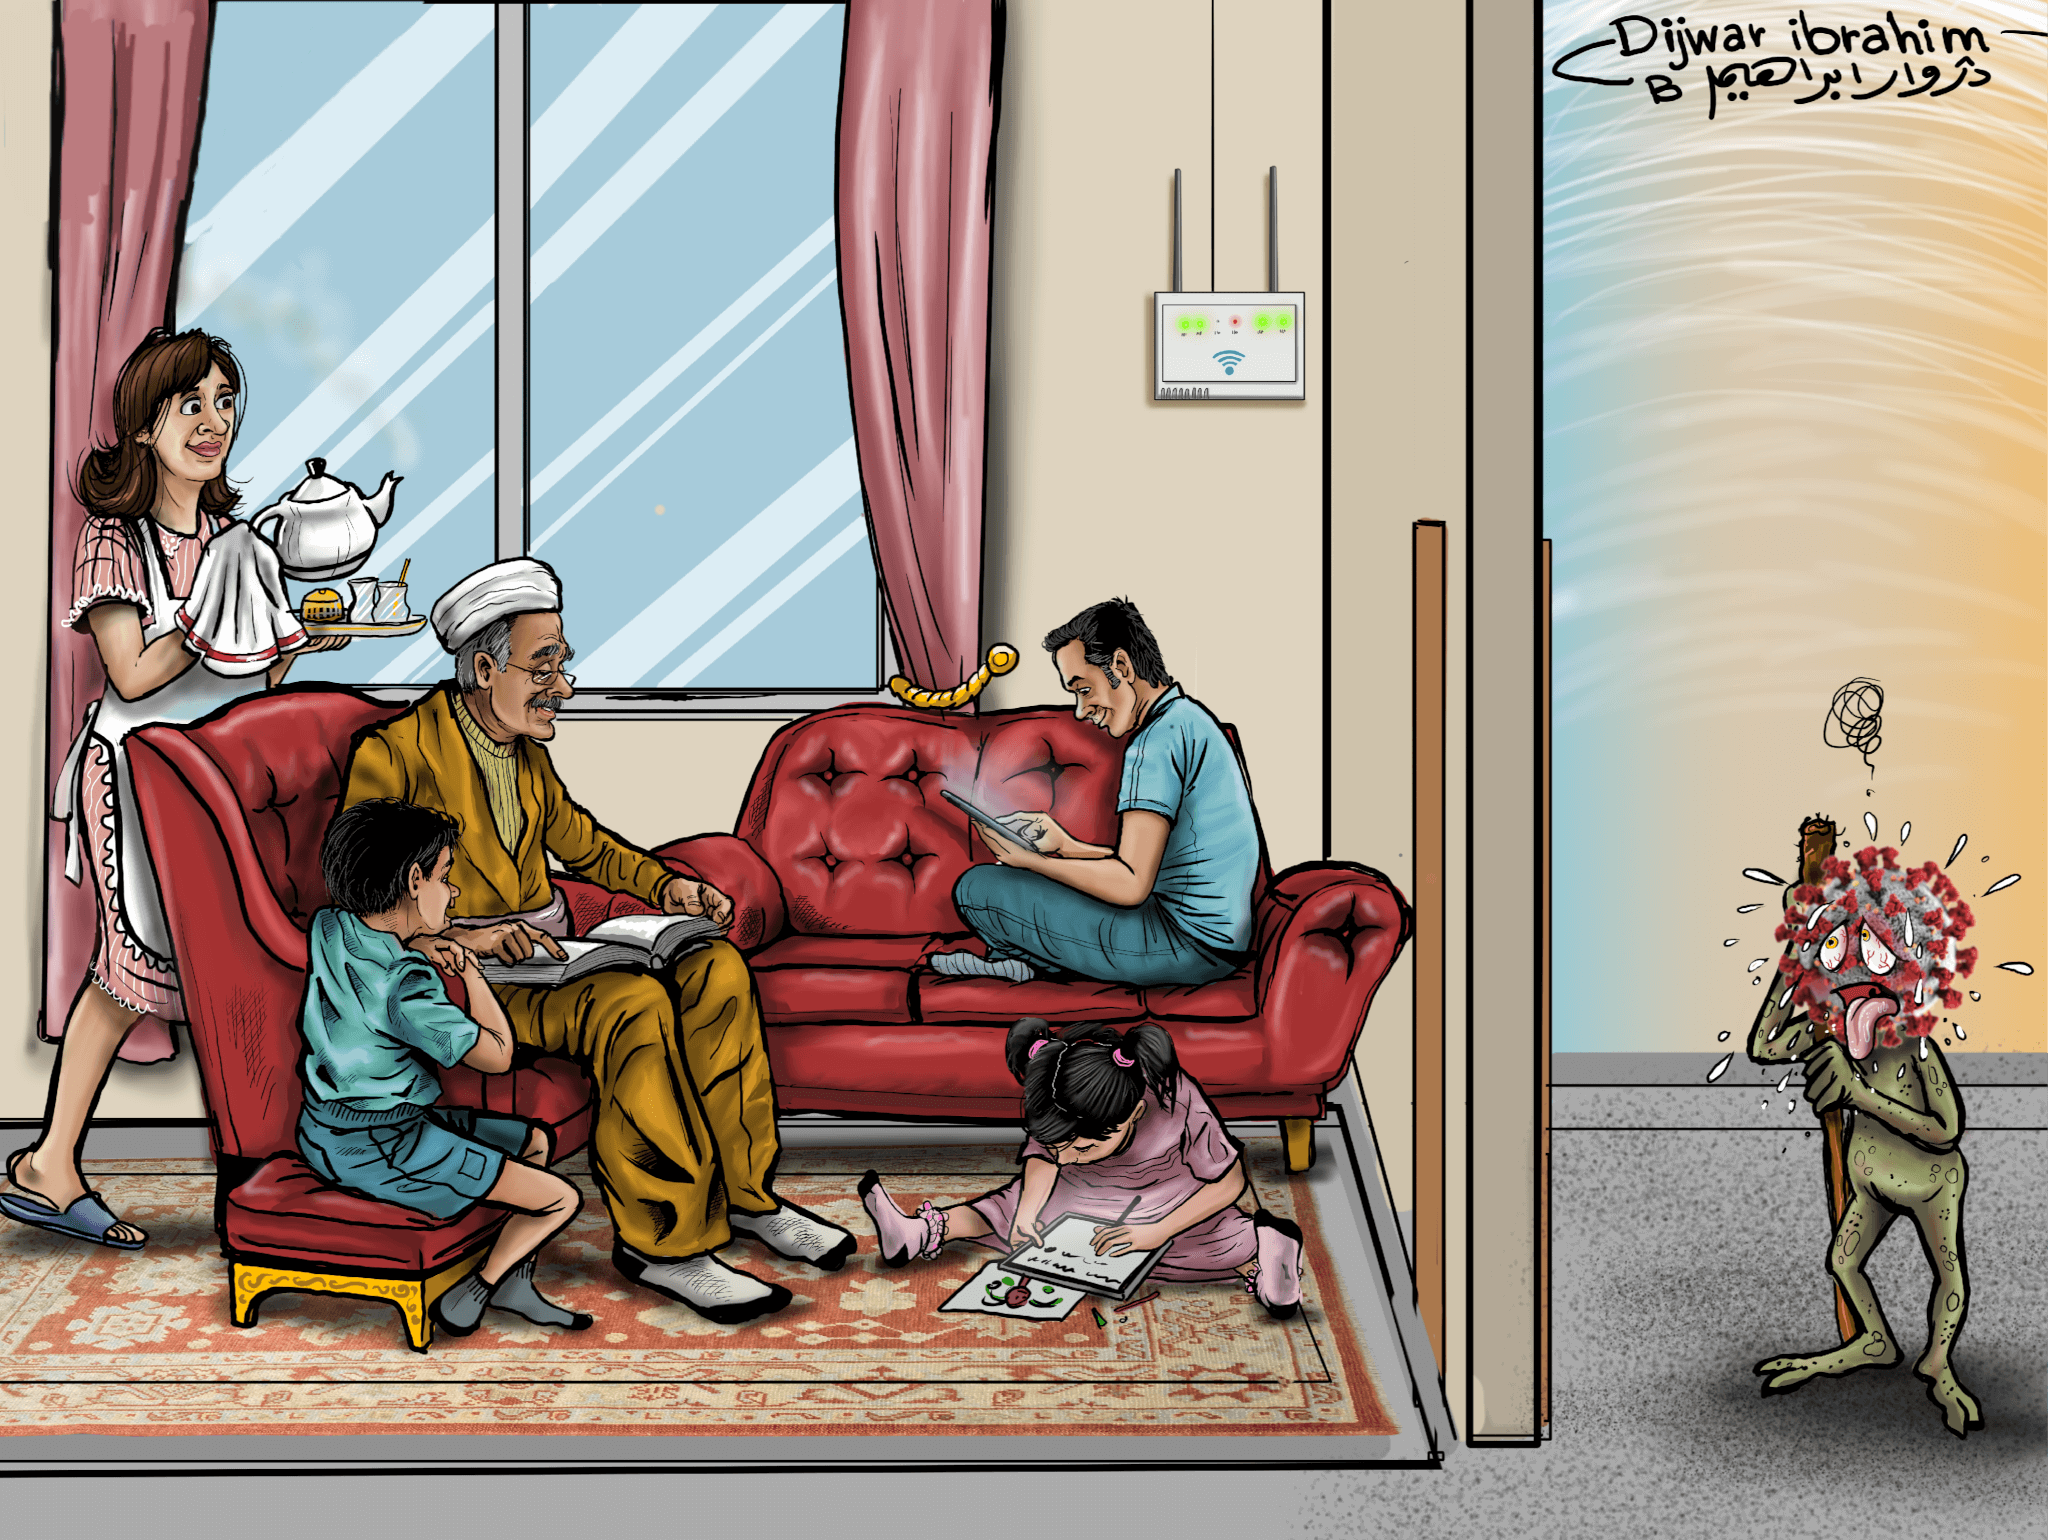 13: Staying at Home Protects All, by Dijwar Ibrahim